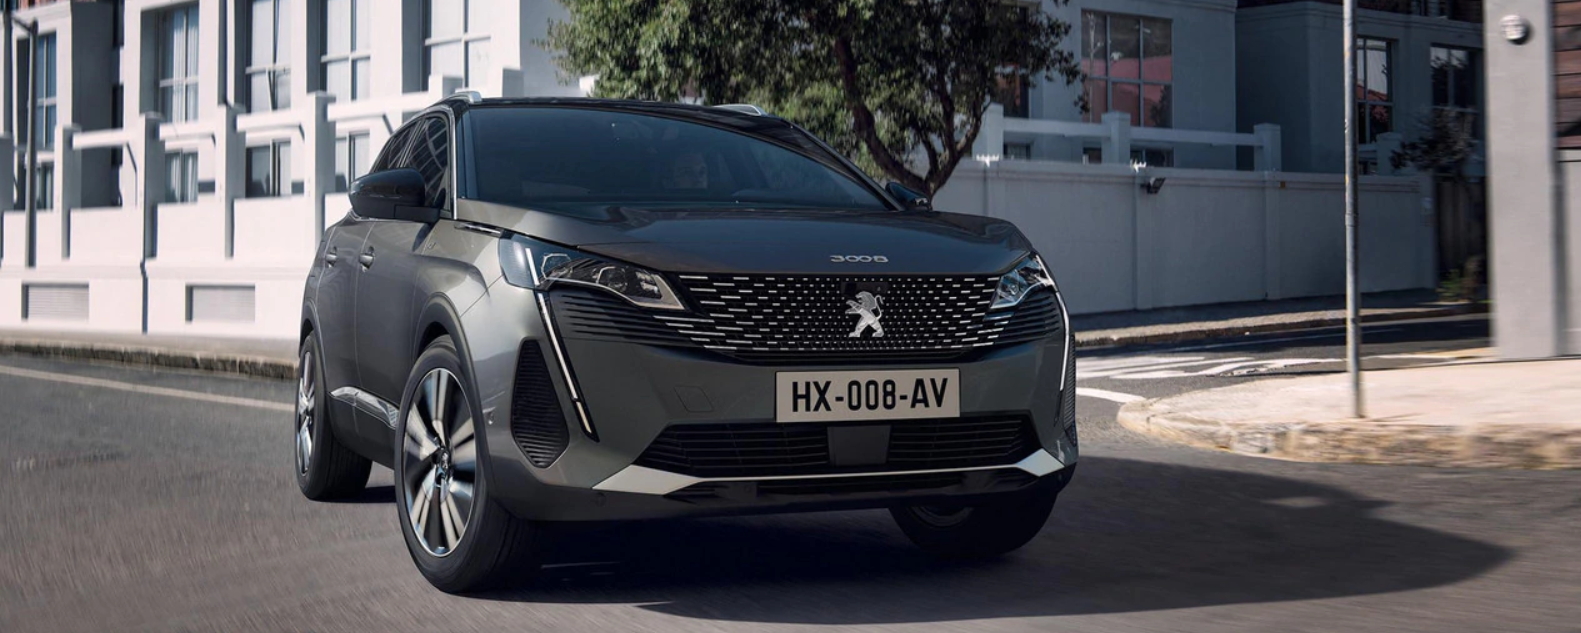 PEUGEOT 3008 GT Pack Sports utility vehicle 1.6 PureTech PHEV AWD Electric : Peugeot 3008 GT Pack